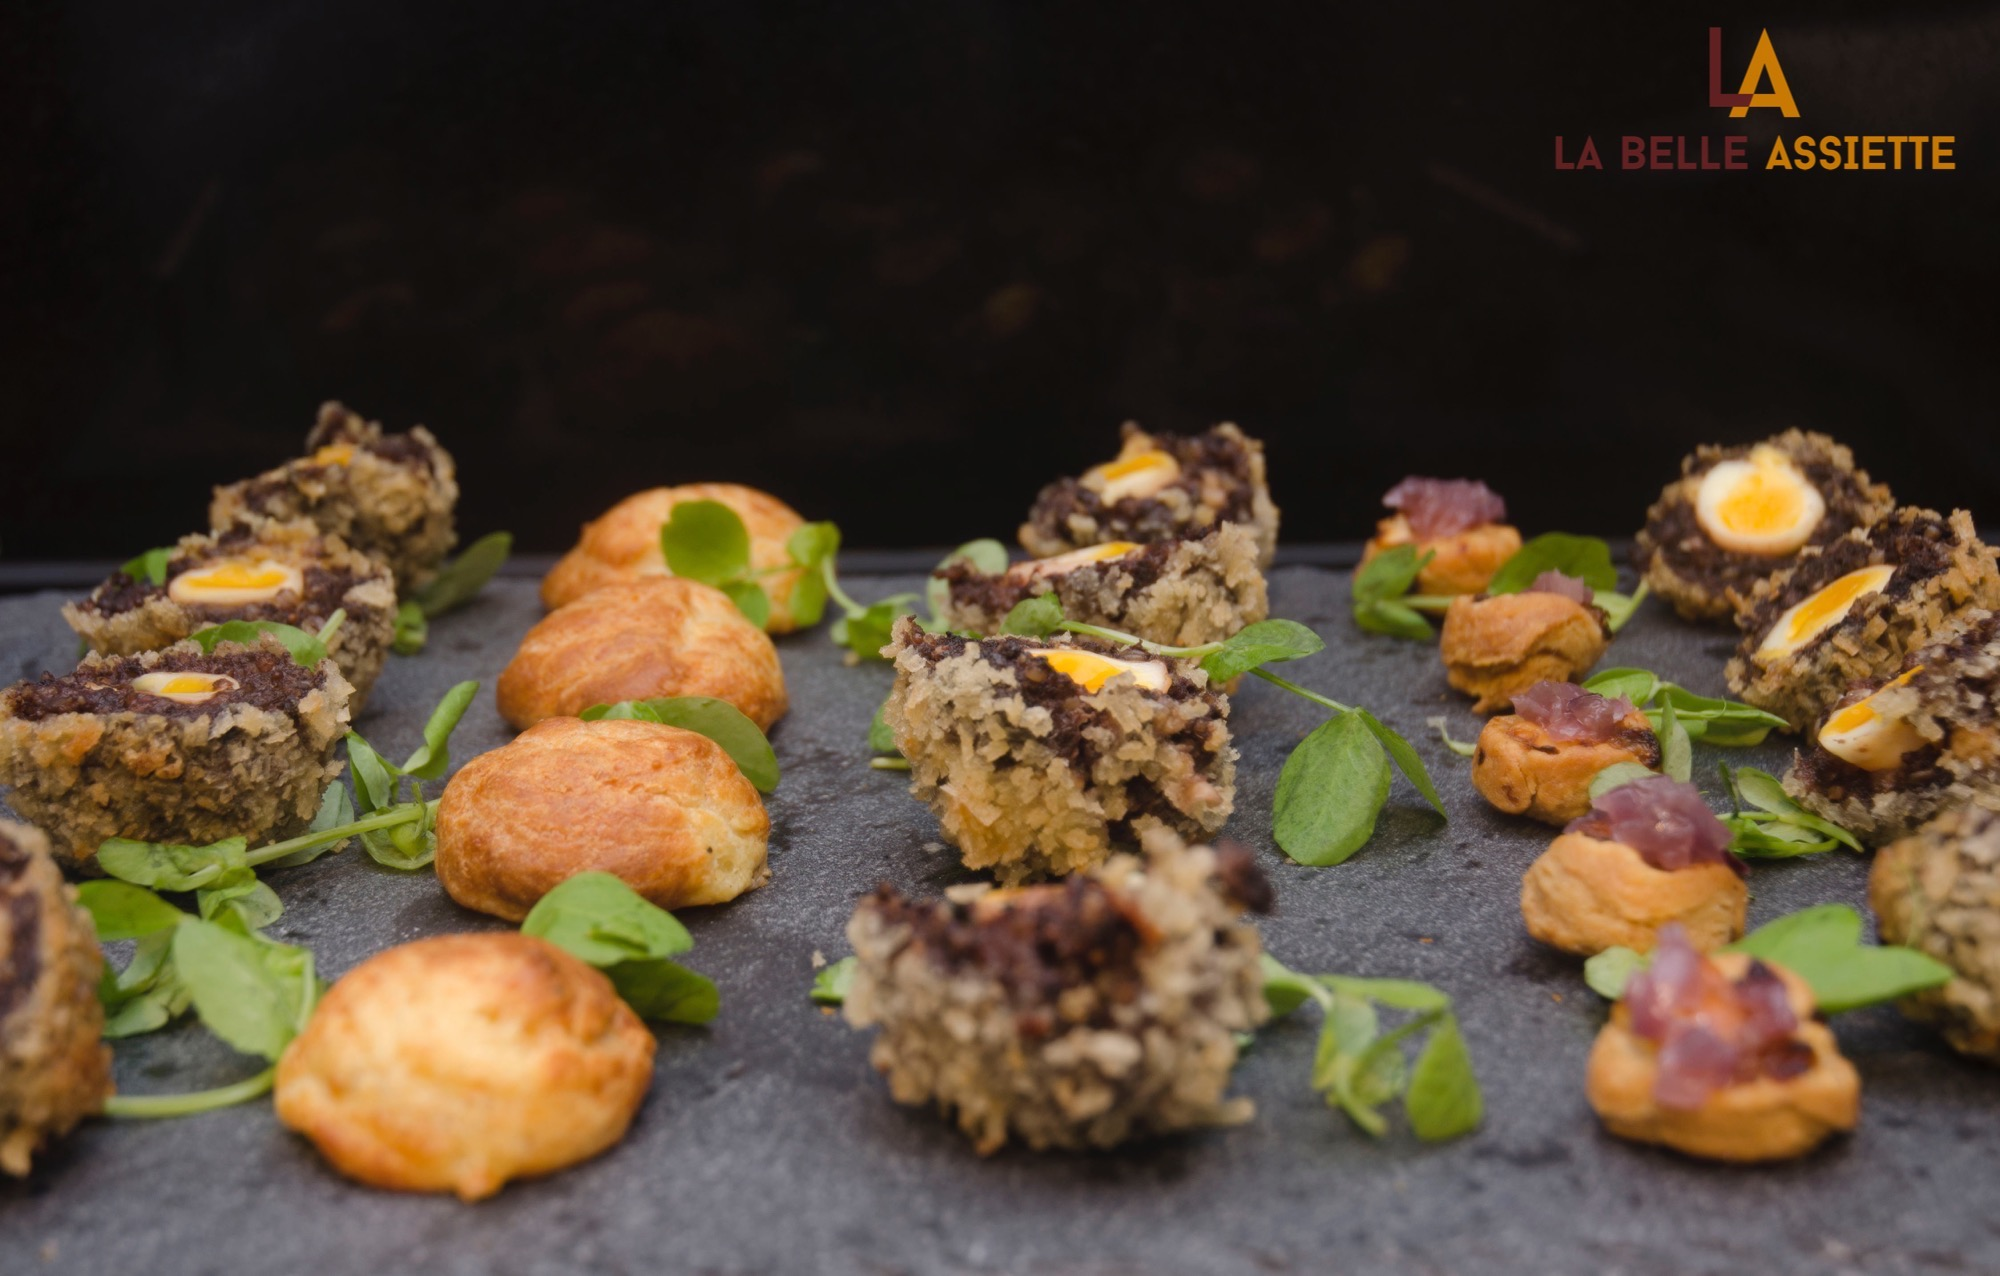 food from on demand chef service, La Belle Assiette catering